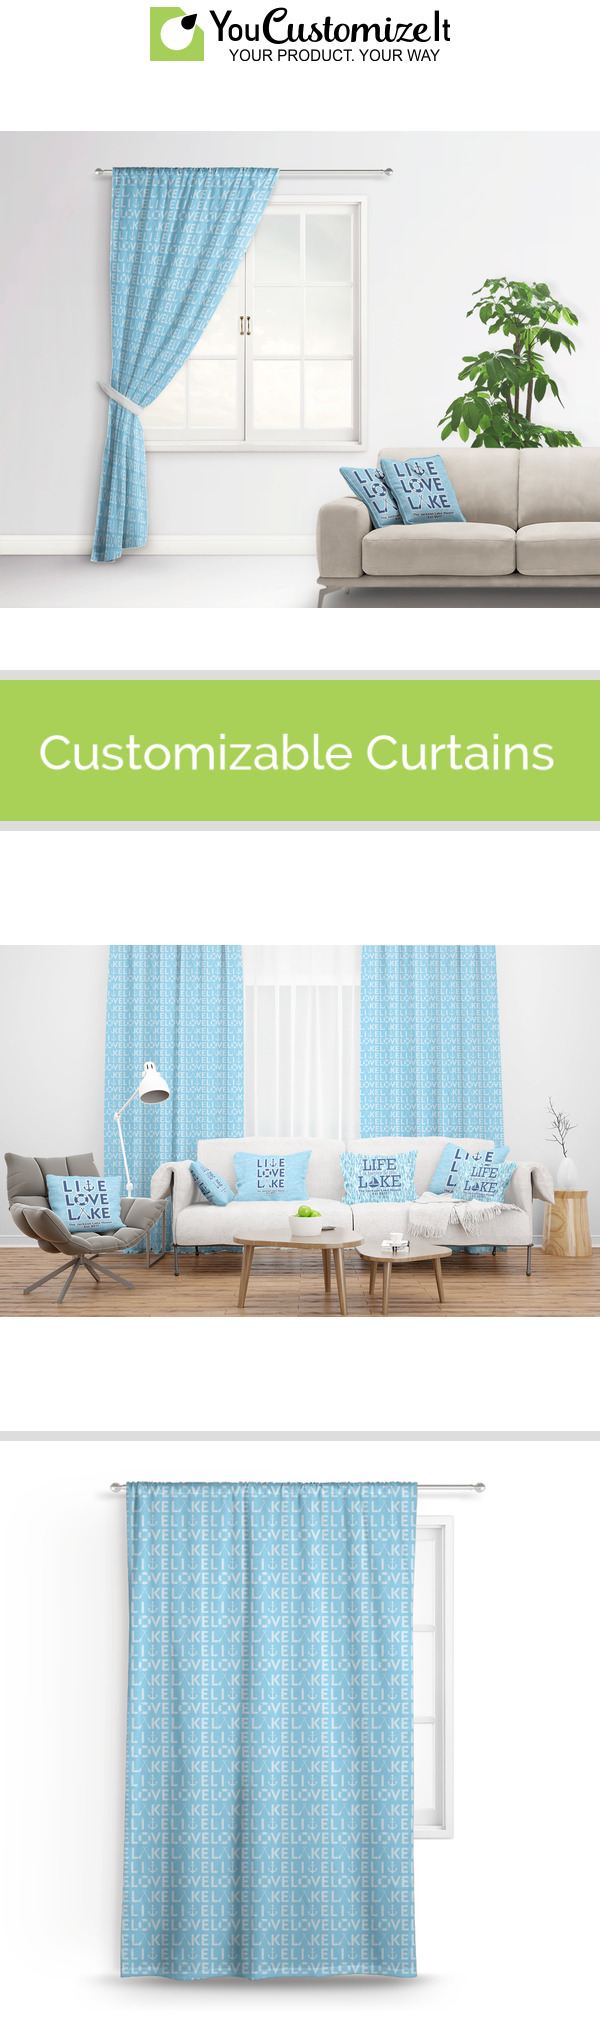 Live Love Lake Curtain (Personalized) in 2020 Custom